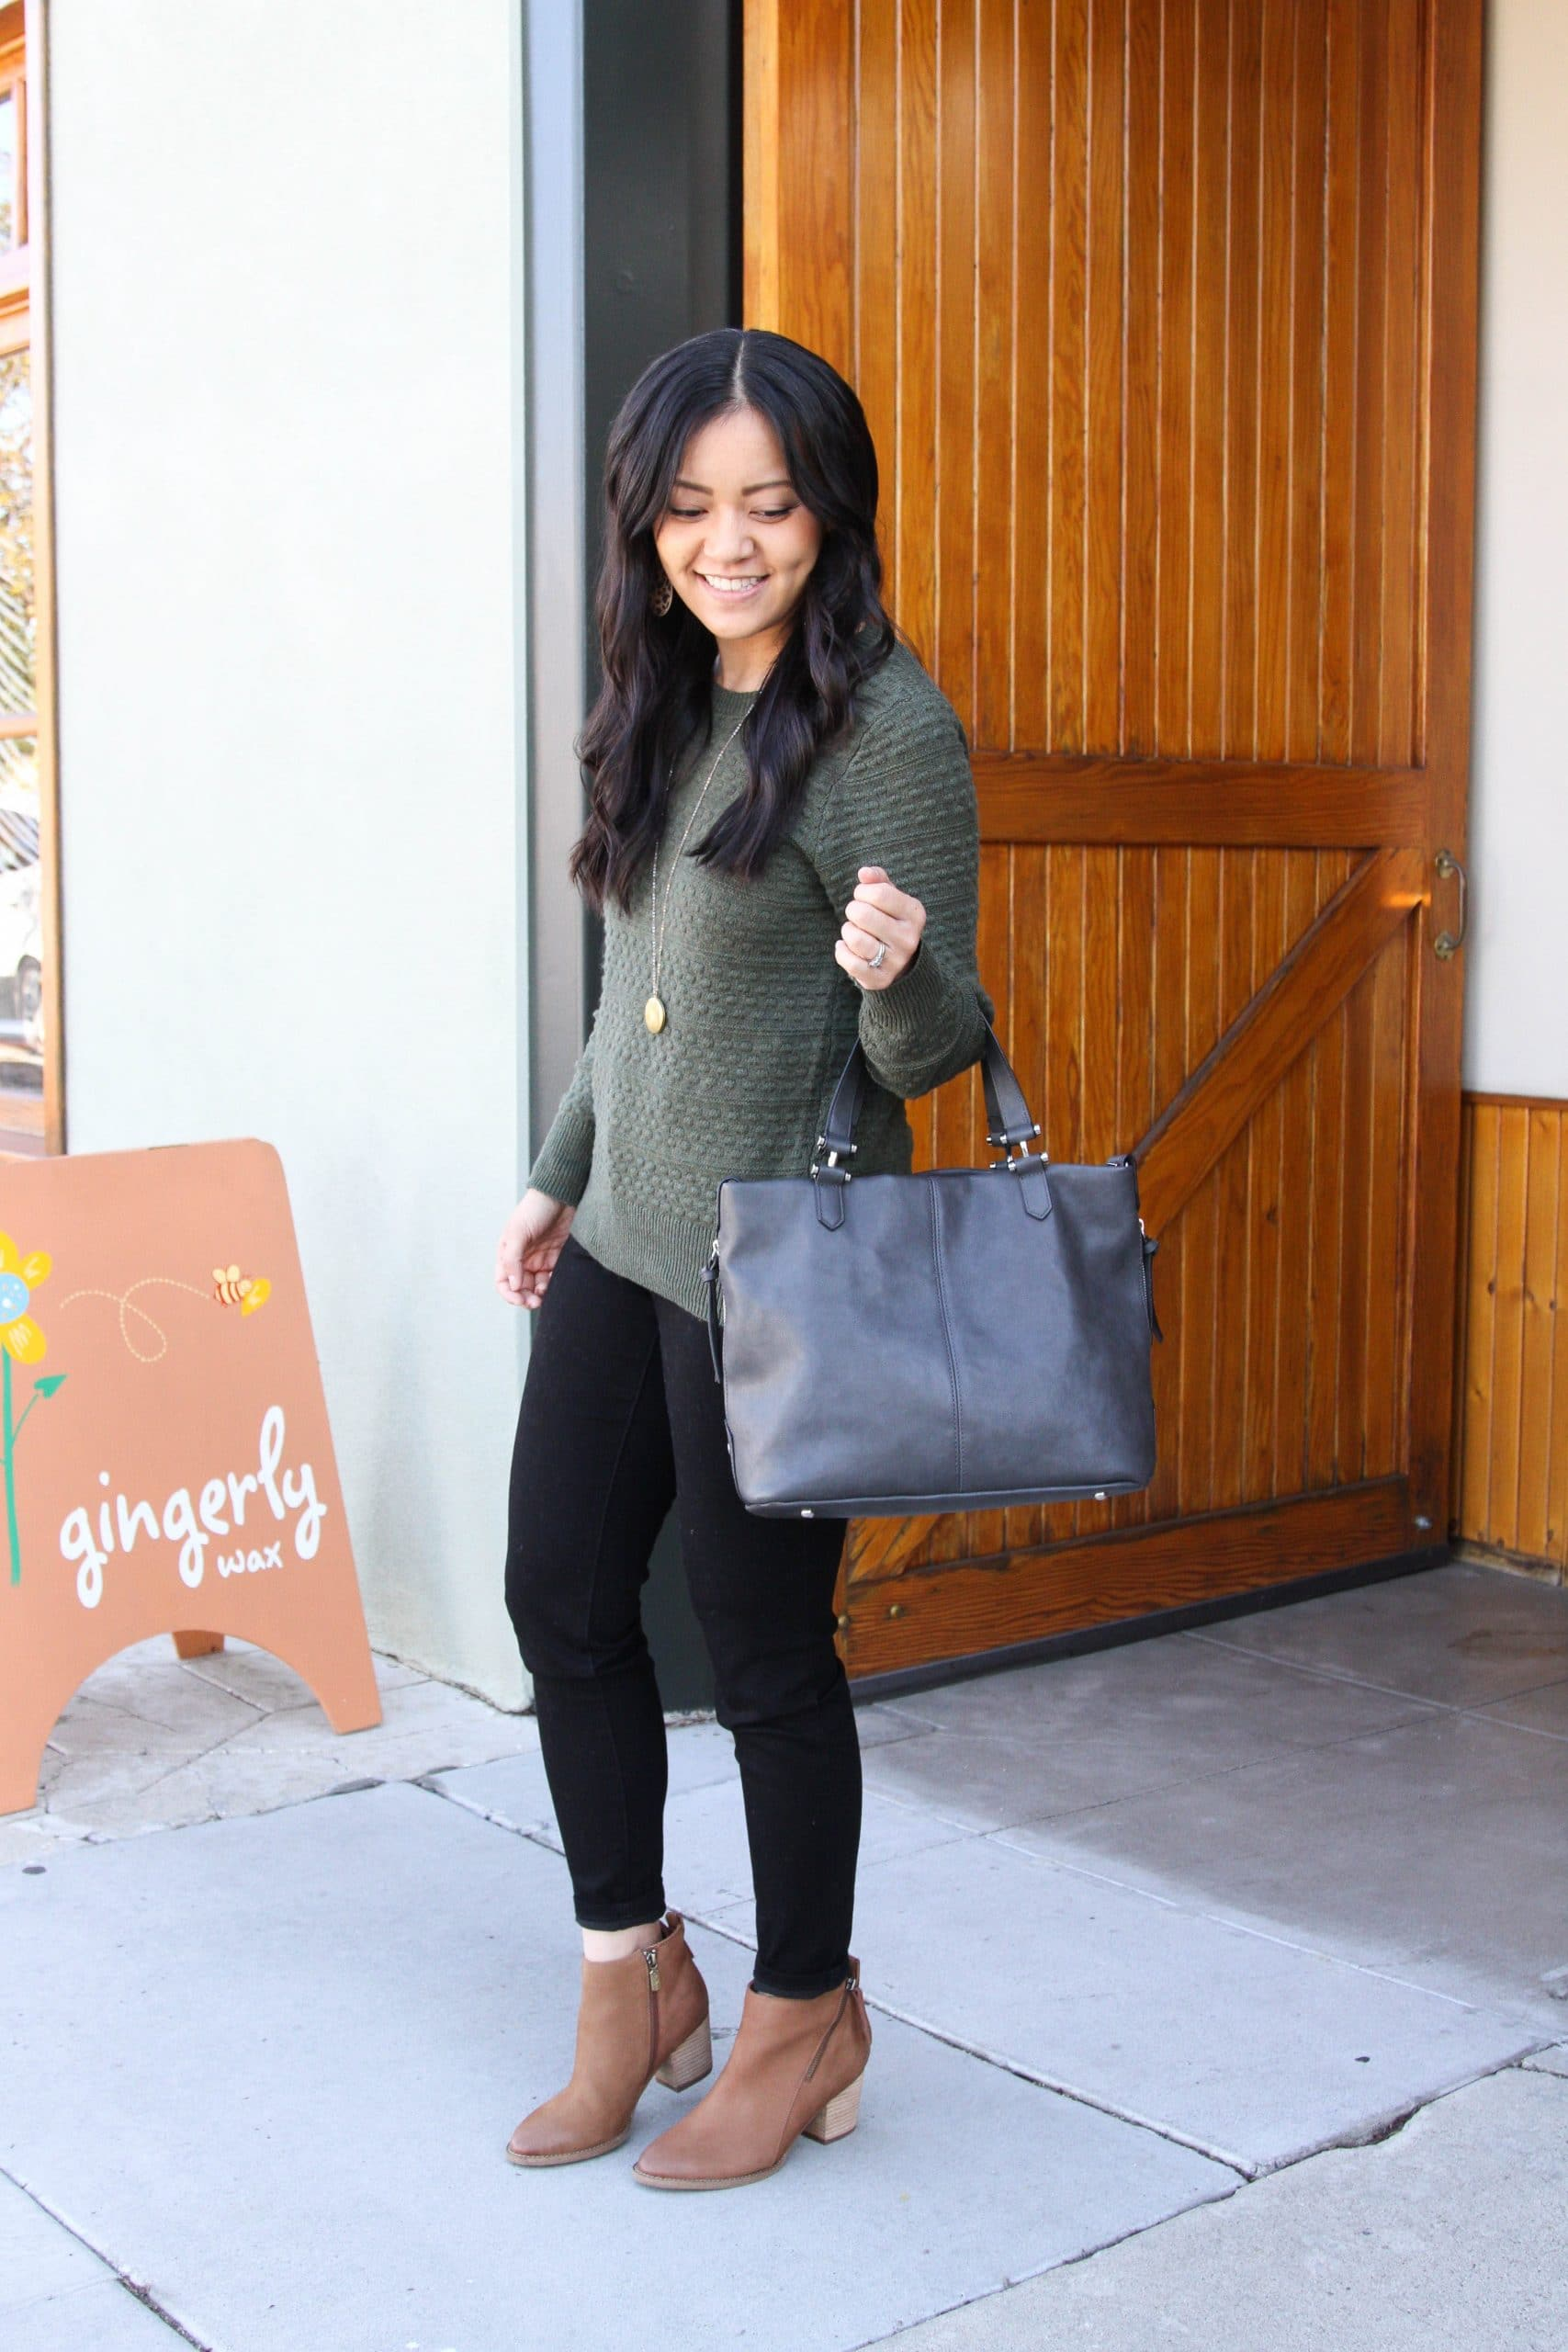 green sweater + grey purse + black skinny jeans + brown booties